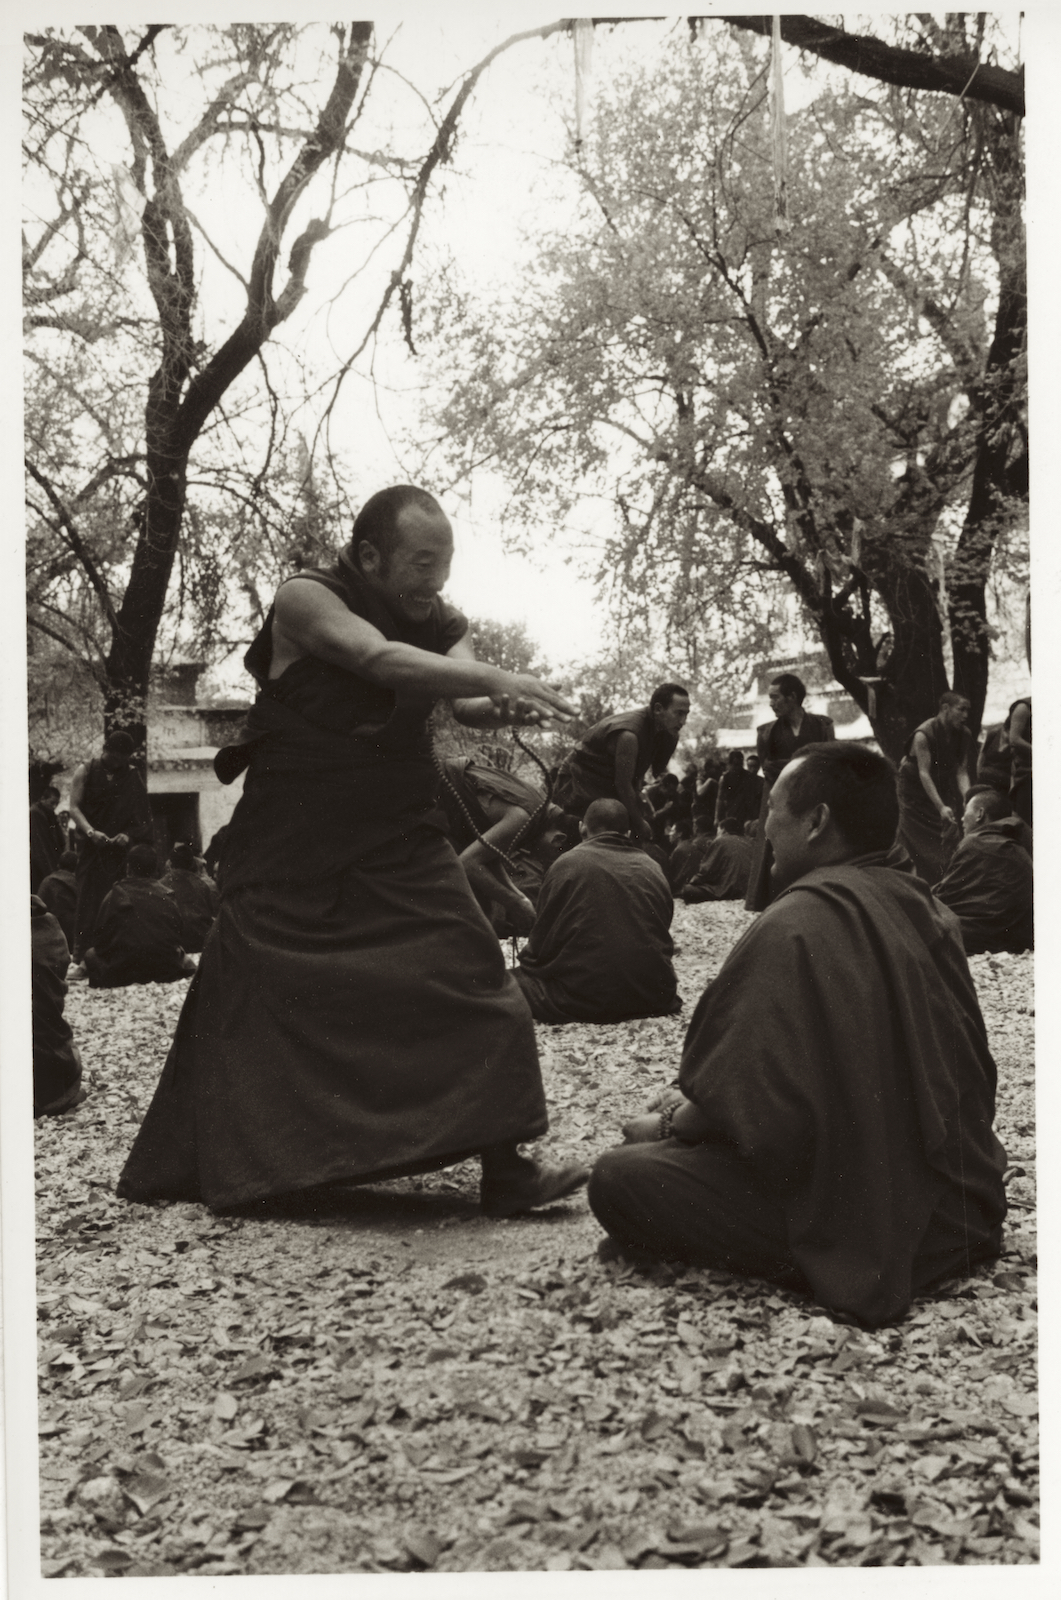 Monks debate at Sera Monastery in Tibet.  Image by New Orleans based travel photographer, Marc Pagani - marcpagani.com